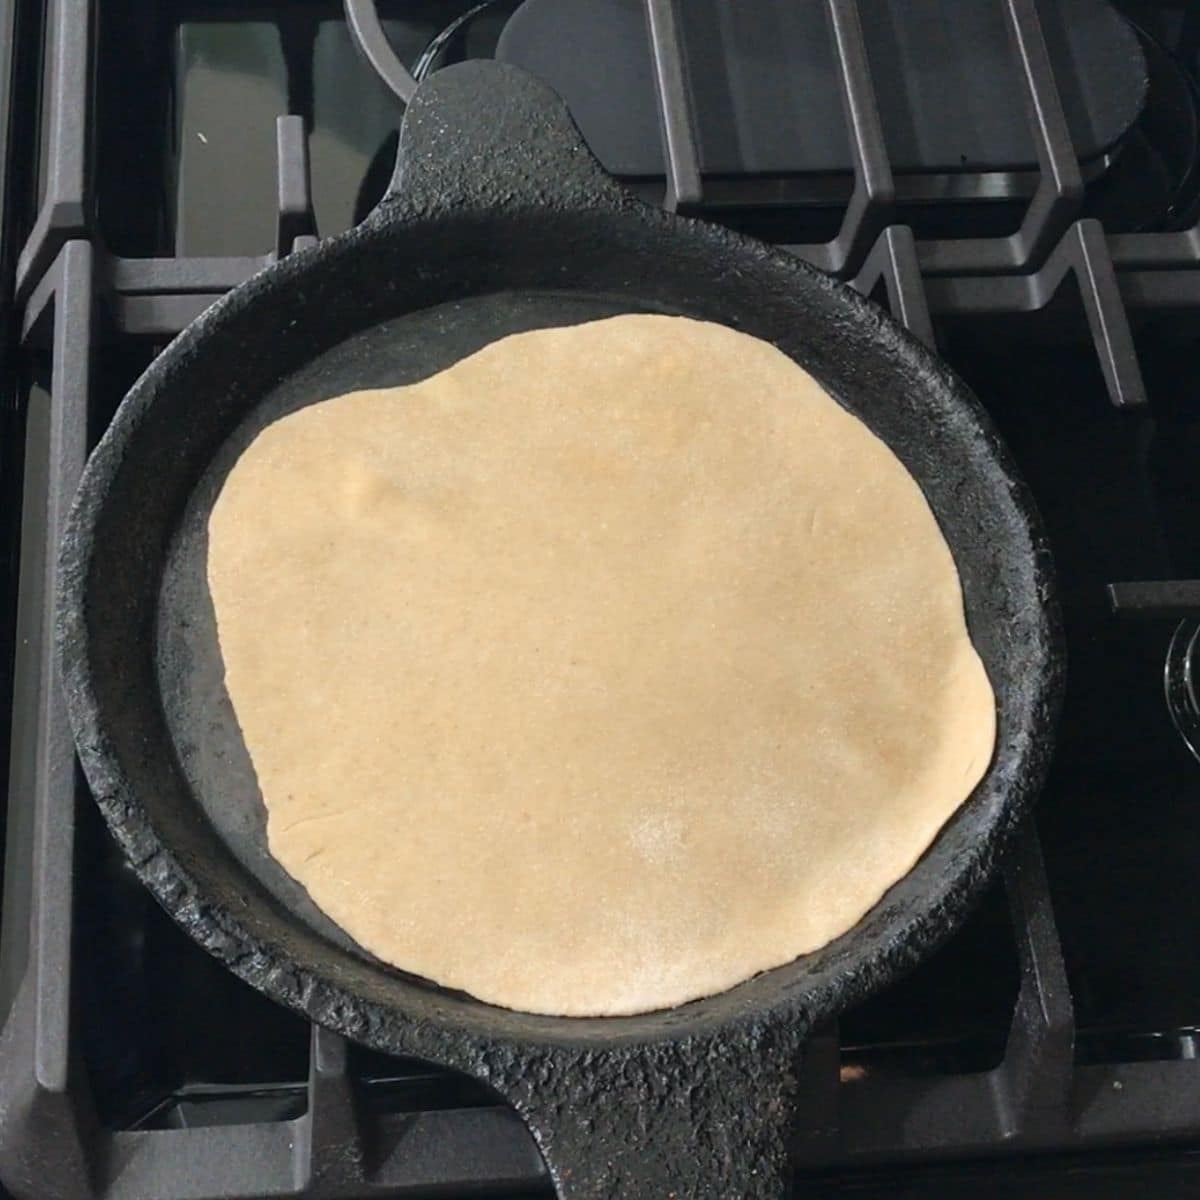 A phulka roti is placed on the tawa over the heat